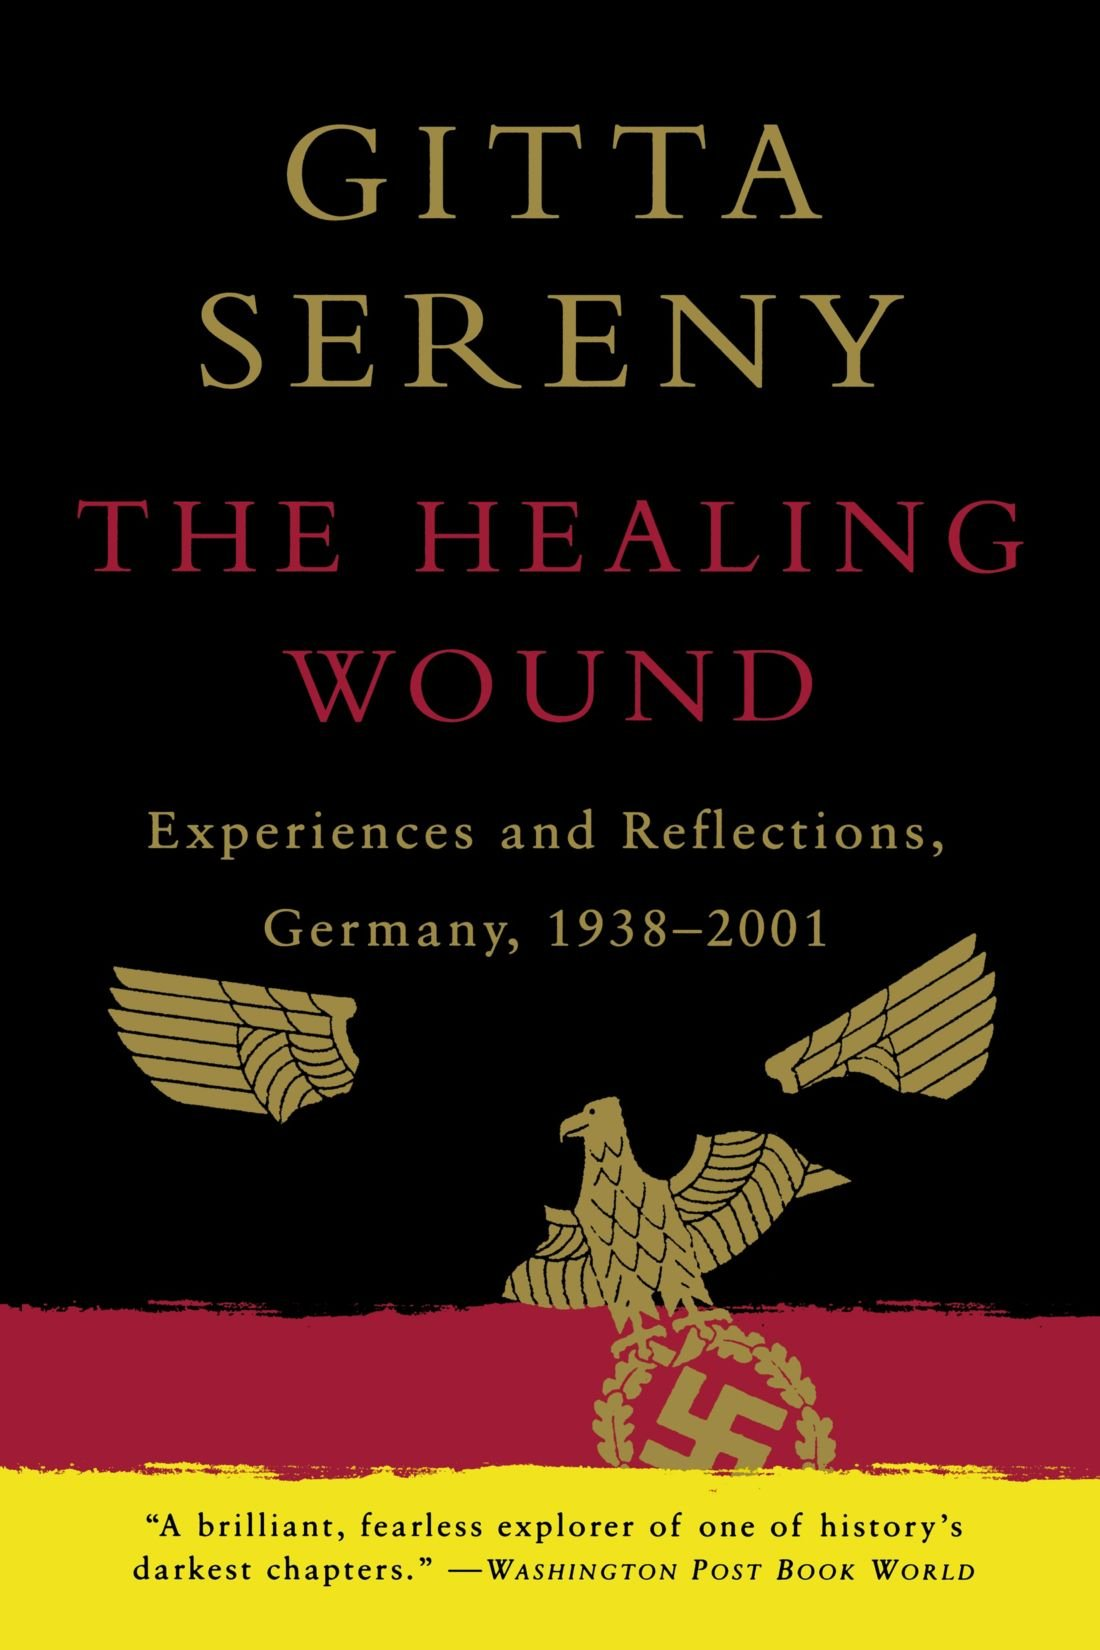 Image result for gitta sereny the healing wound amazon